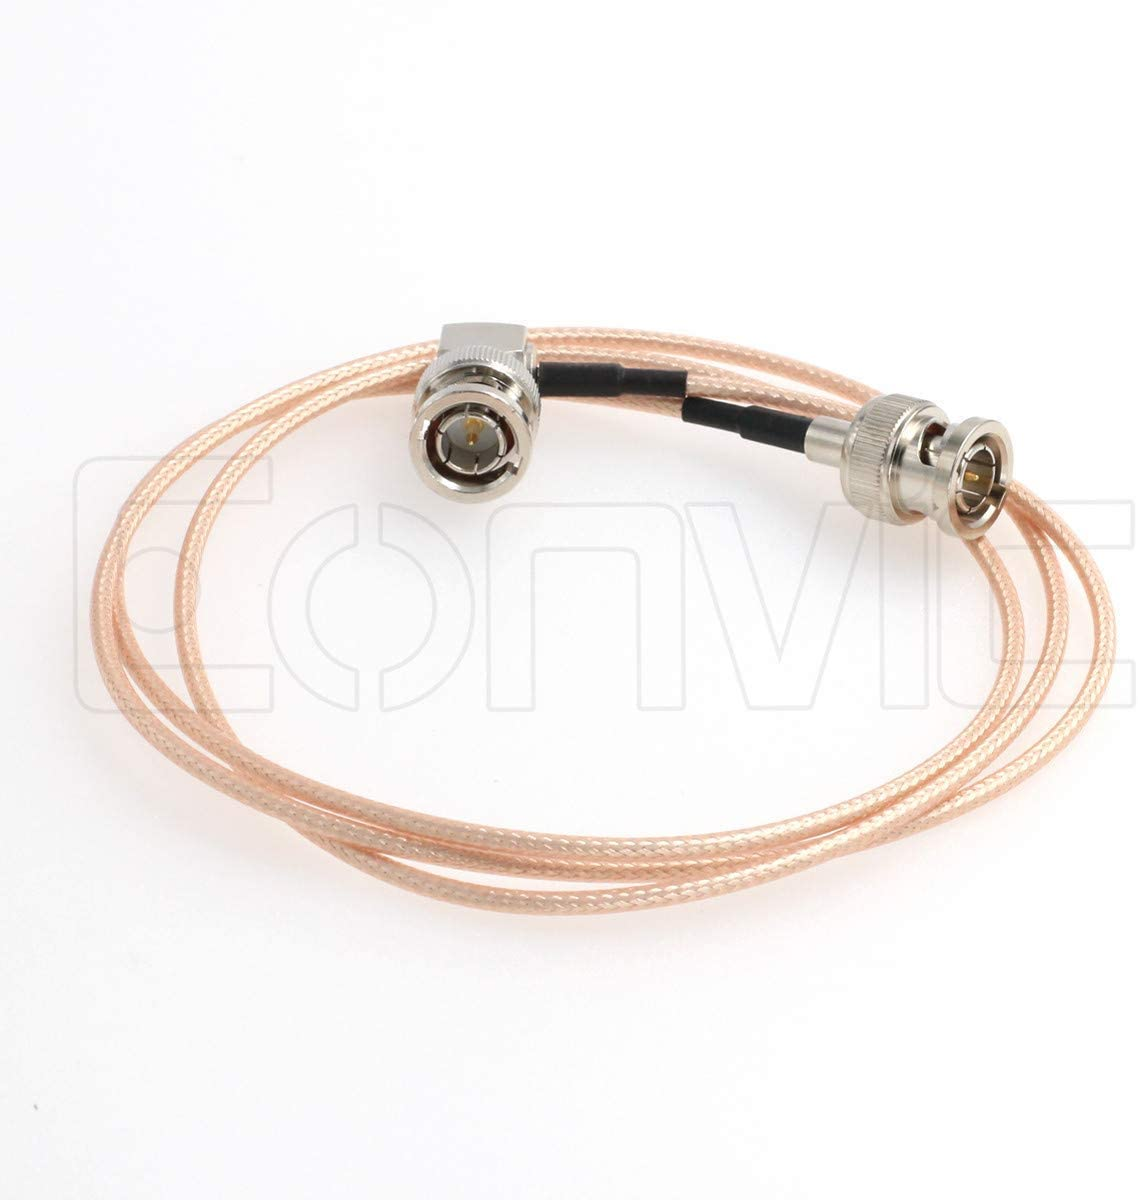 Eonvic RG179 75ohm BNC Plug Right Angle Pigtail Coaxial Cable for fs700 to atomos Recorder or BMCC Video Camera 45cm 45cm //18inch